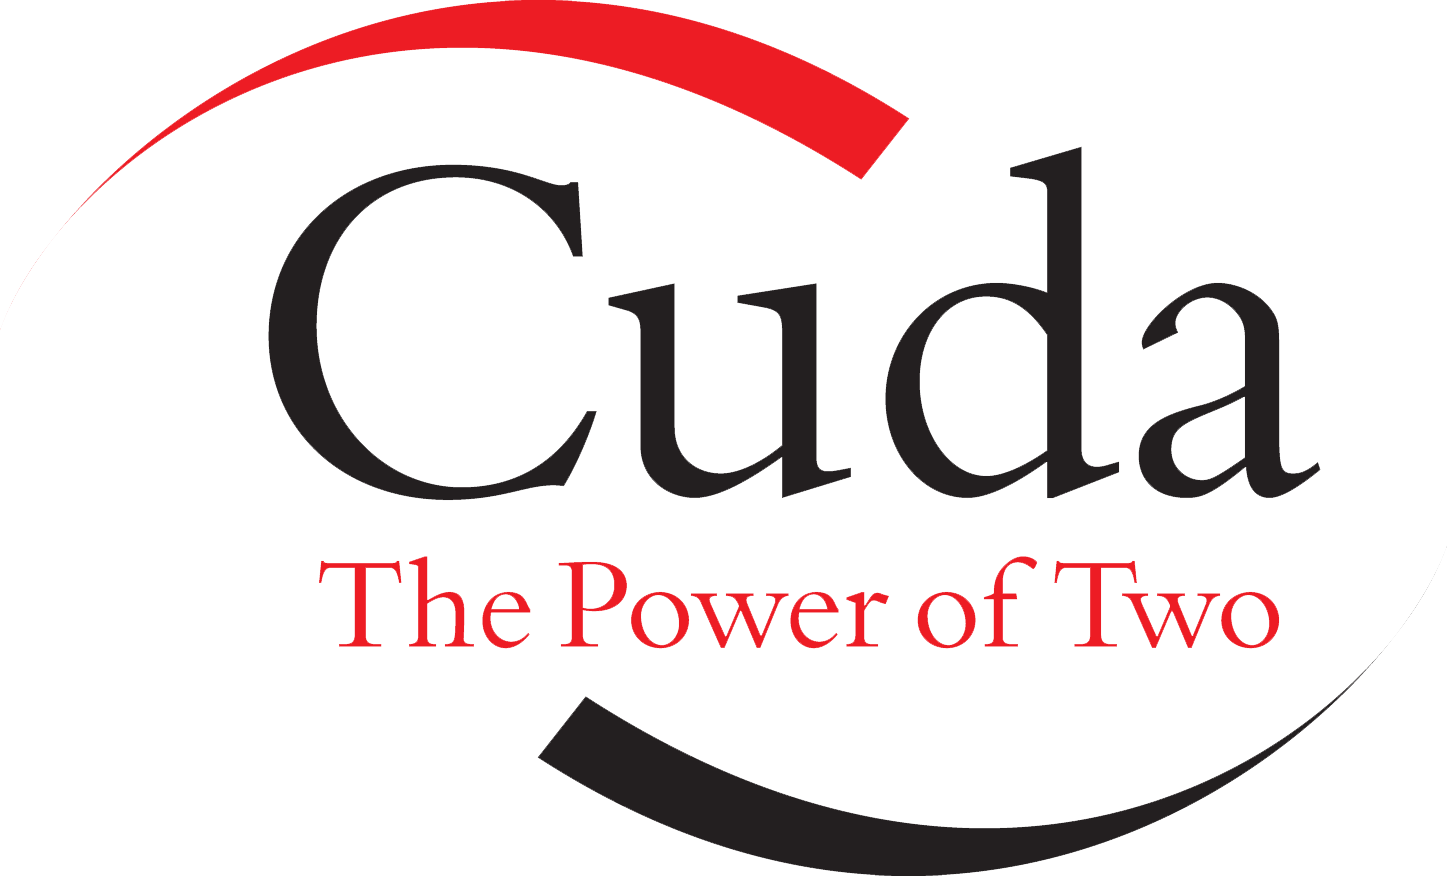 Cuda - The Power of Two